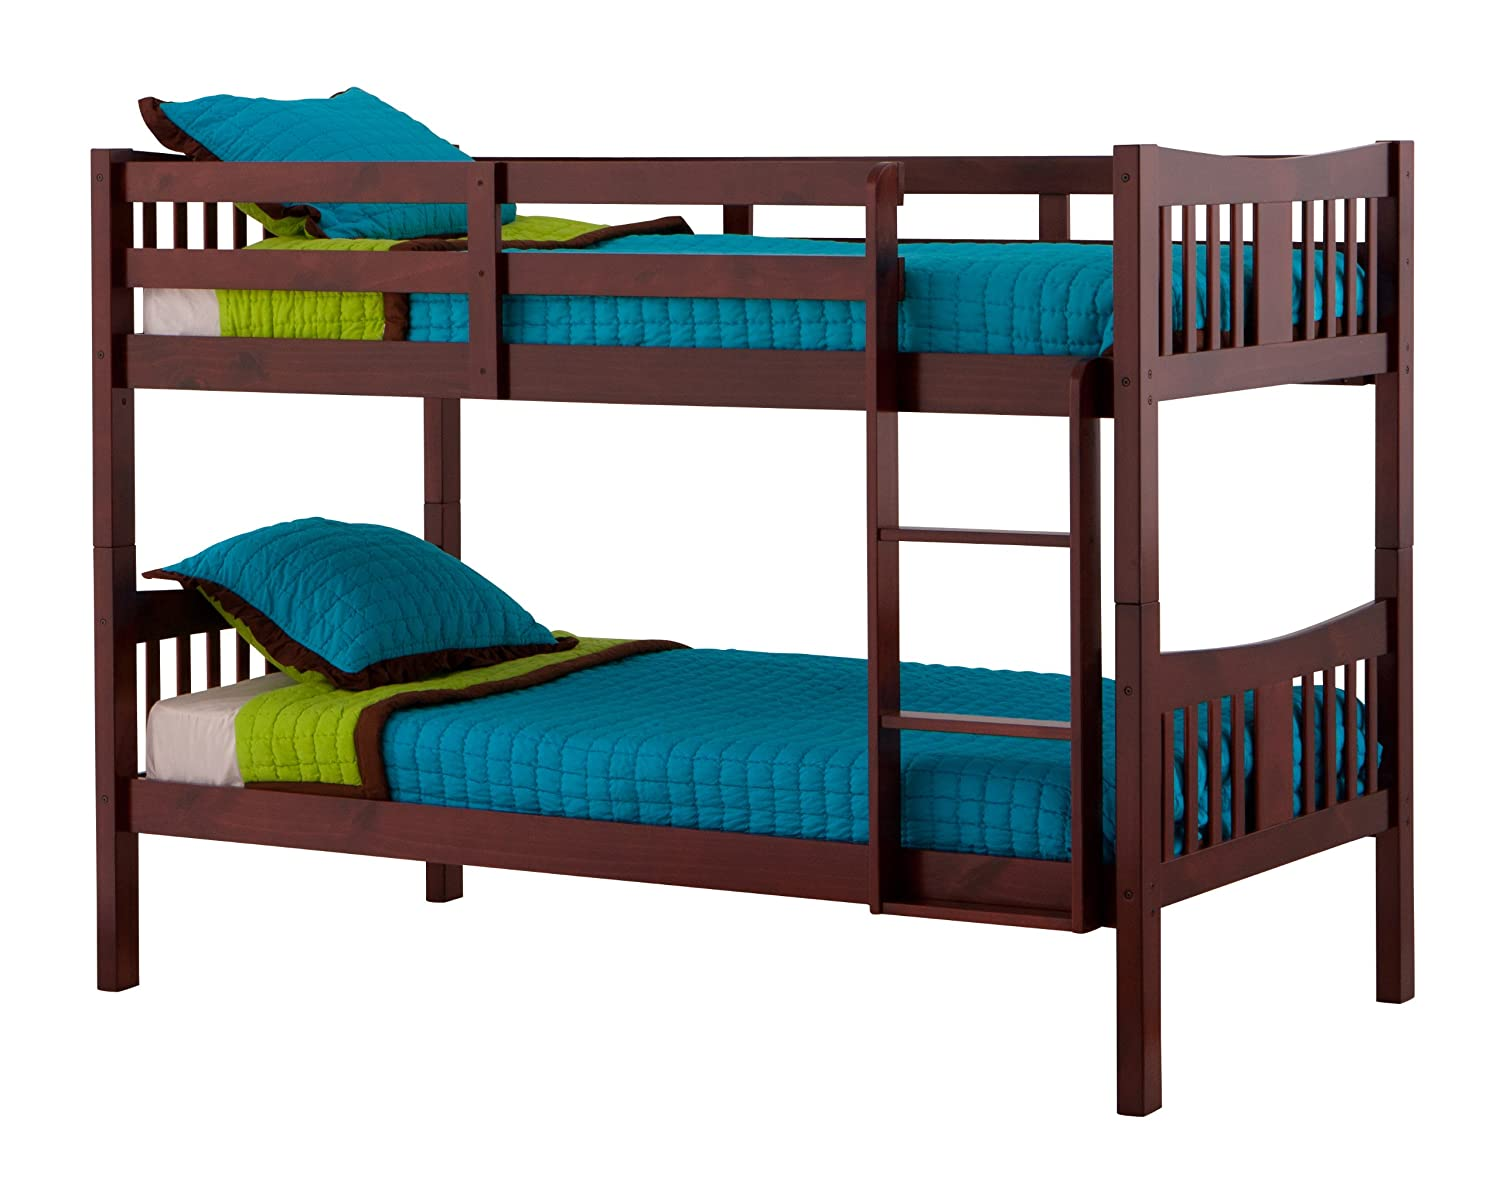 NEW Storkcraft Wood Bunk Beds converts to 2 Twin Beds ...